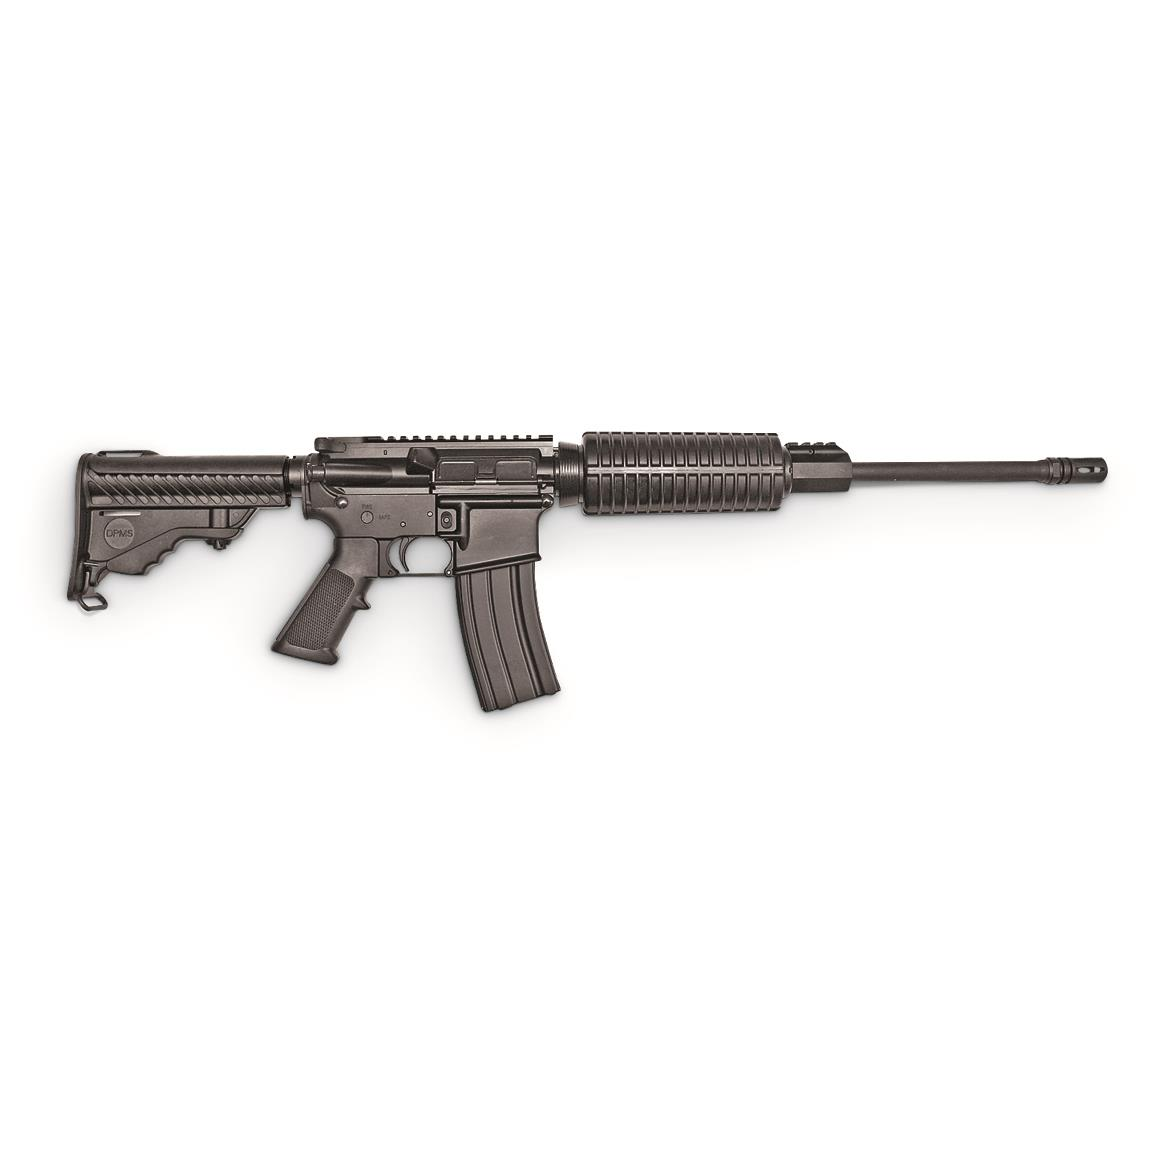 "DPMS Panther Oracle, Semi-Automatic, 5.56x45mm, 16"" Barrel, 30+1 Rounds"